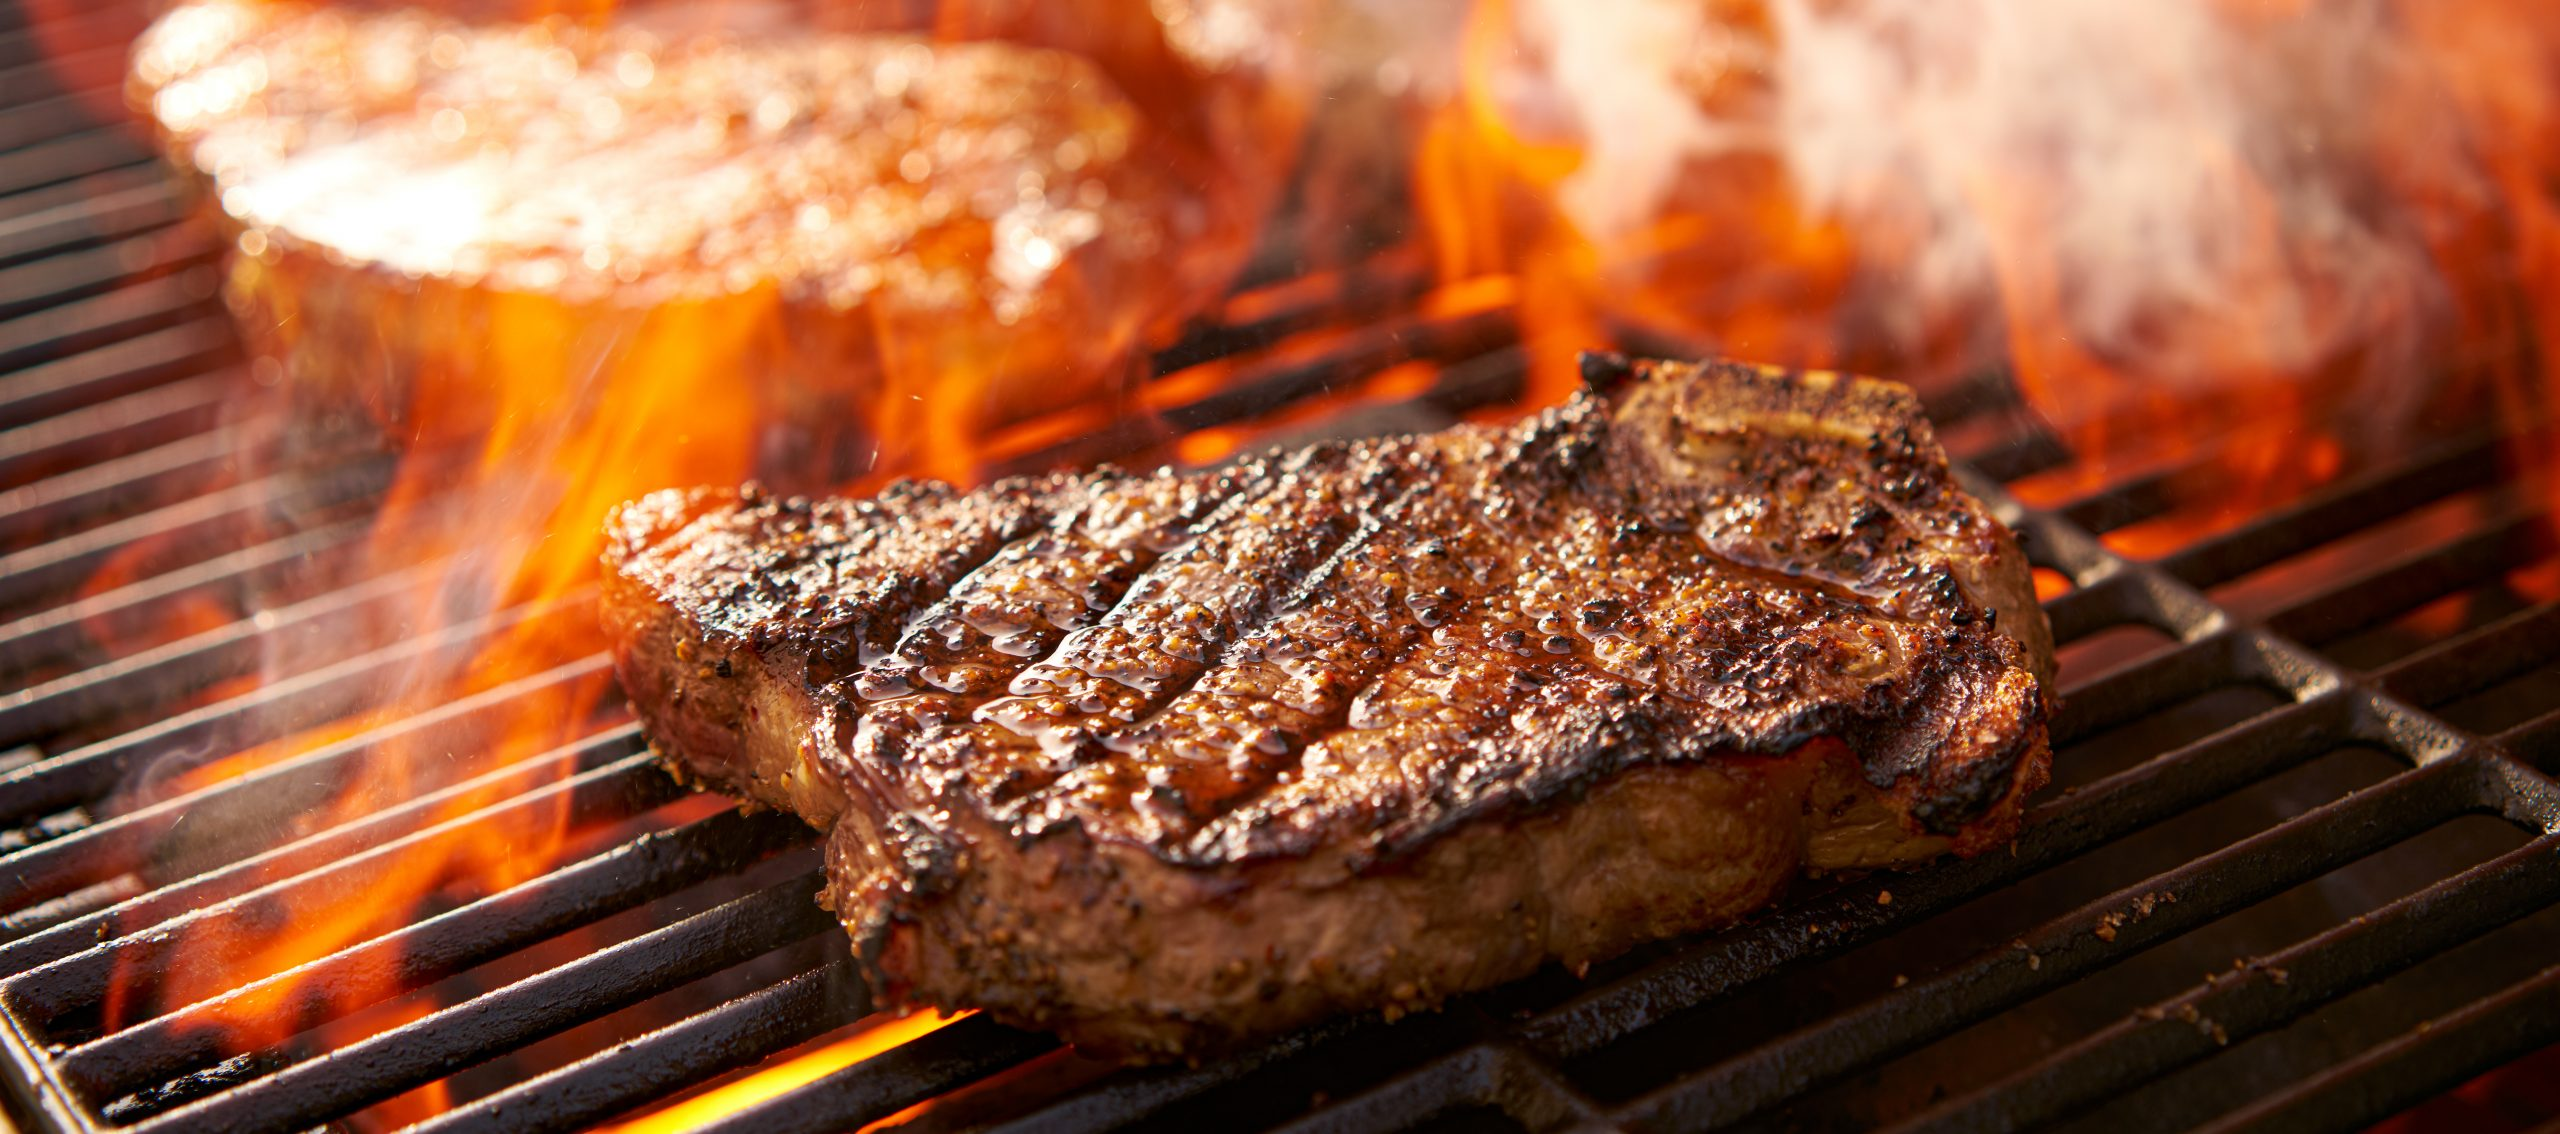 rib eye steaks cooking on flaming grill panorama